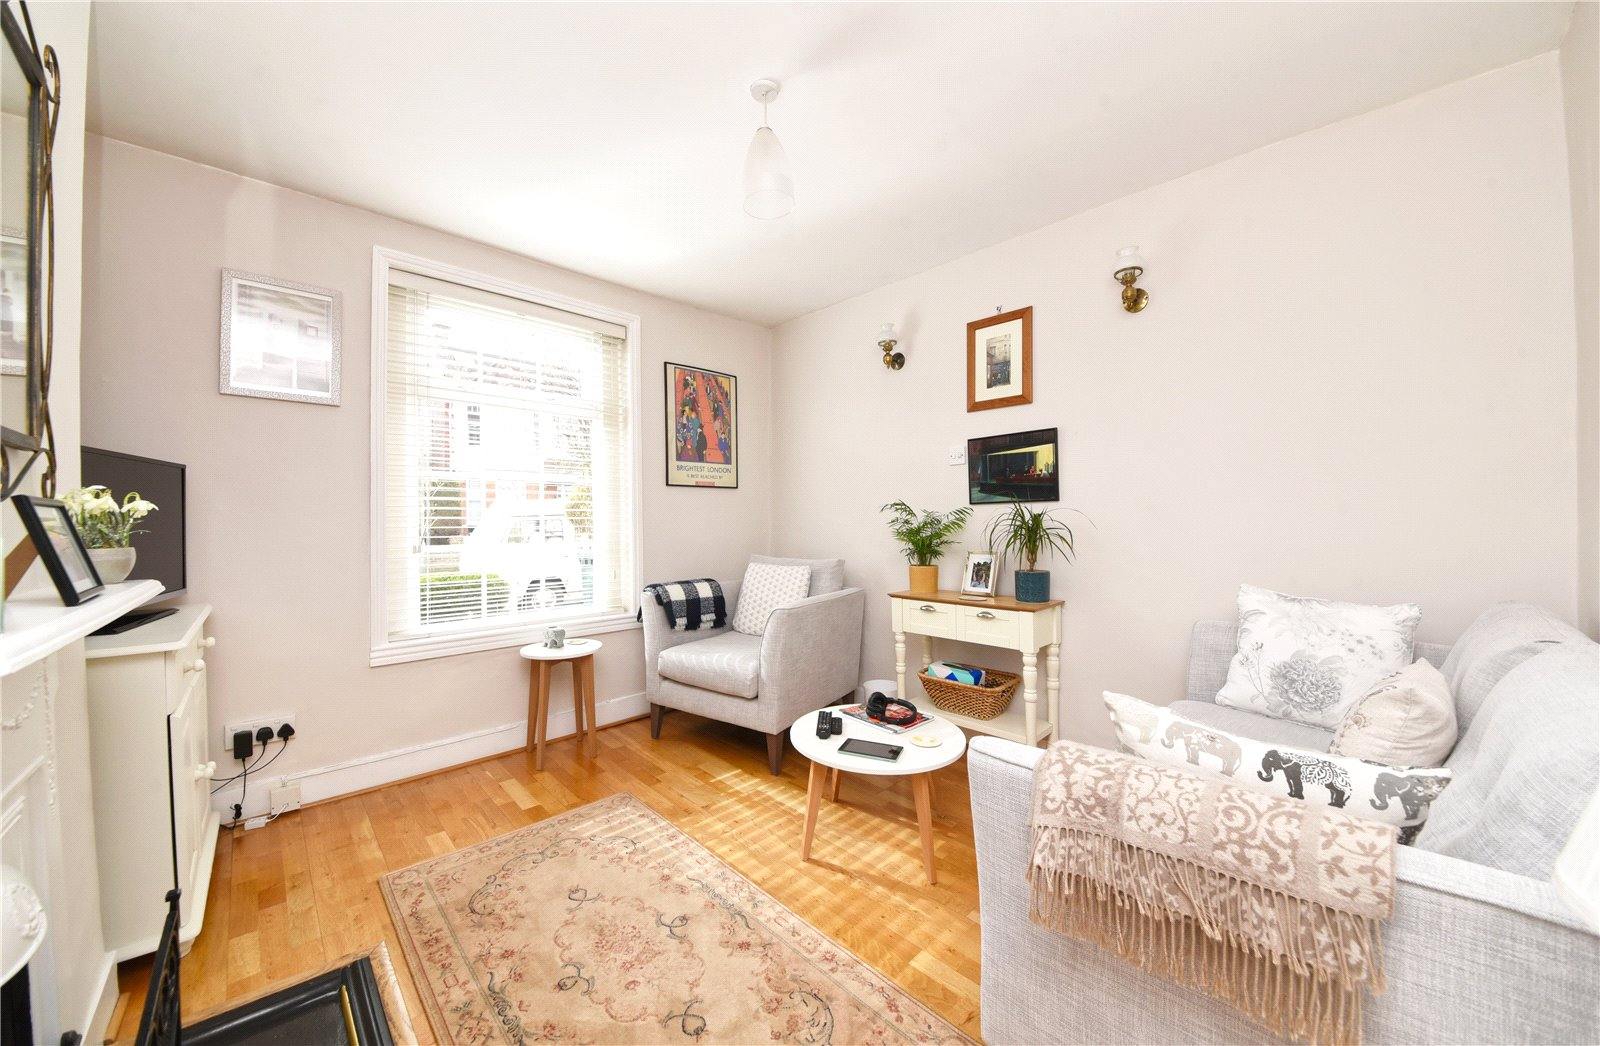 2 bed house for sale in London, N12 9JN  - Property Image 8